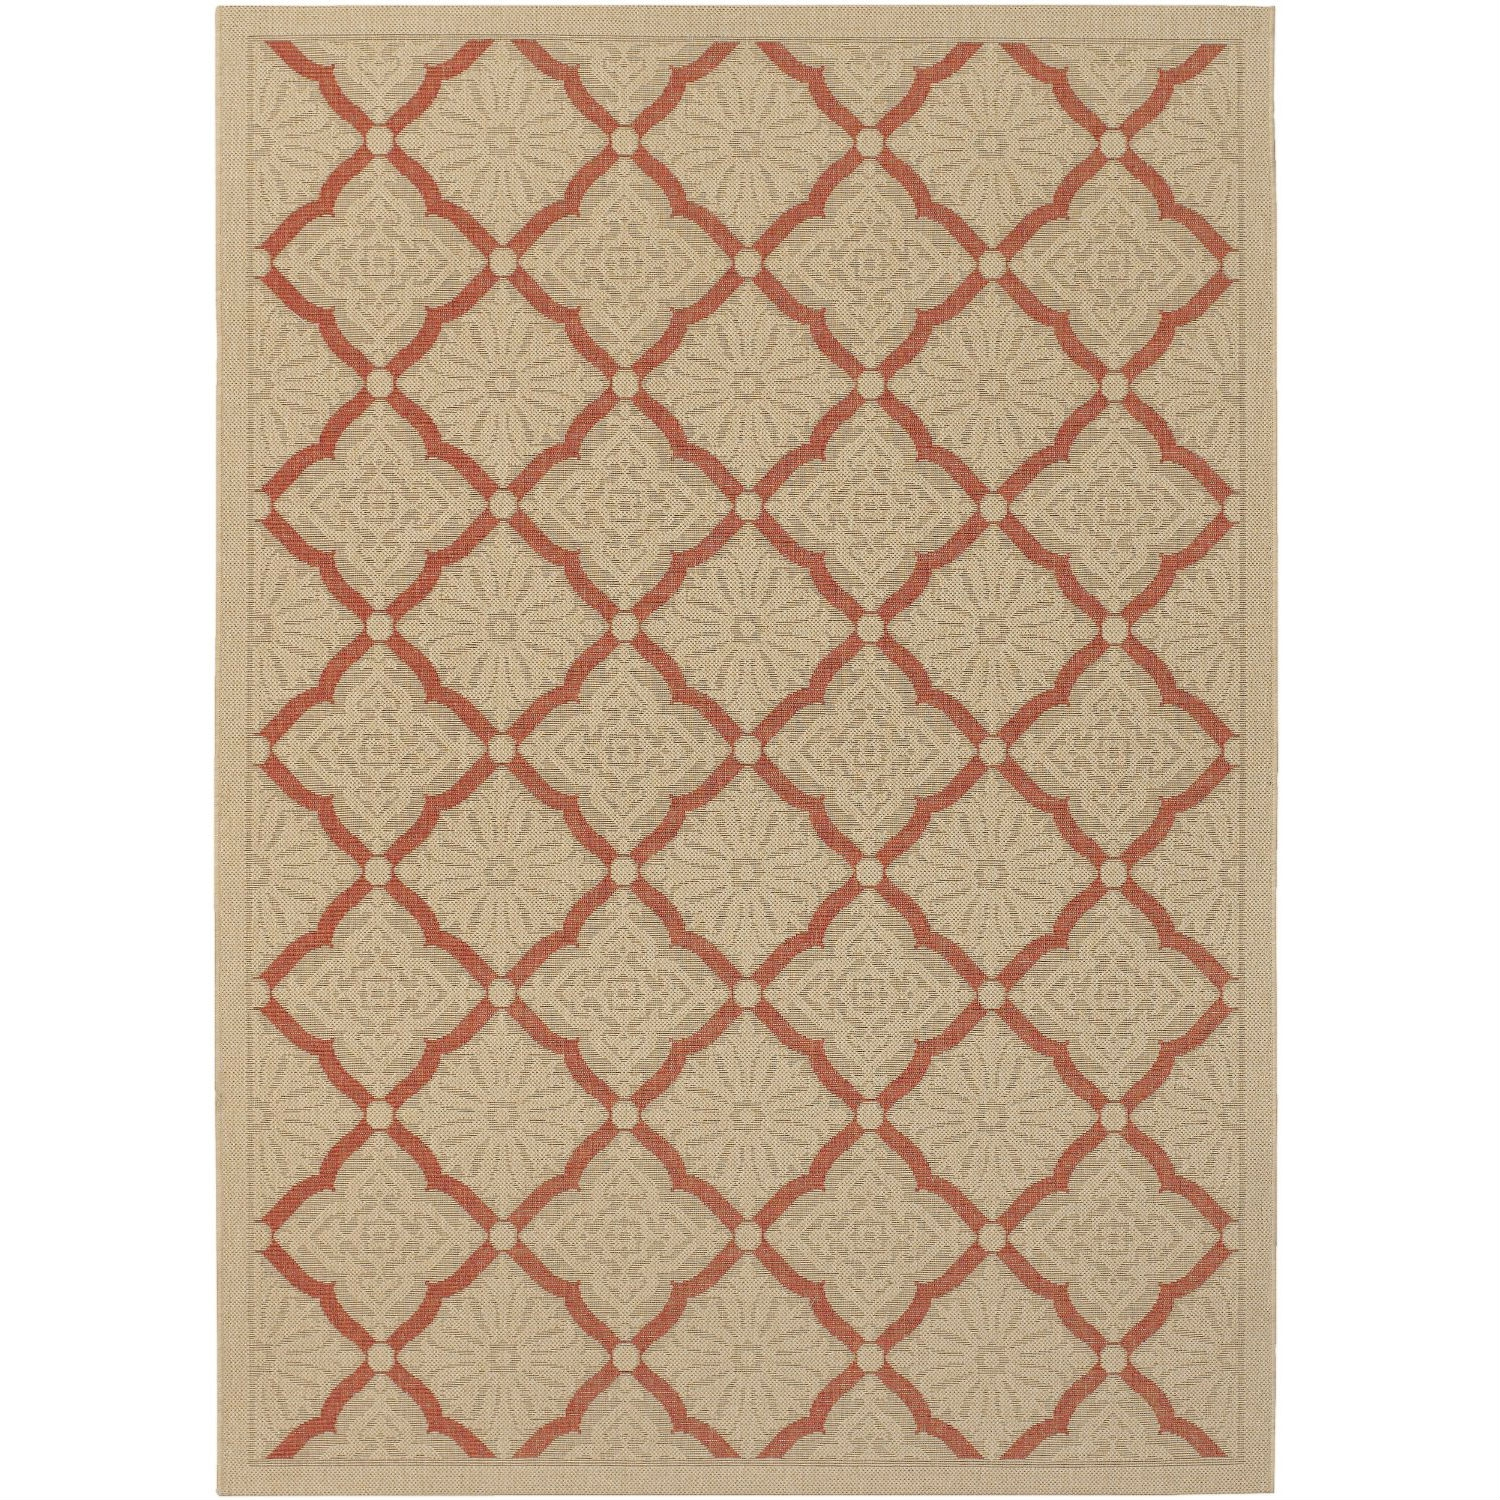 5'10 x 9'2 Terracotta Cream Area Rug with Trellis Lattice Pattern, CAR51061851 :  Varying motifs, ranging from graphic stripes to patterned shapes, take center stage in this 3'7 x 5'5 Indoor Outdoor Area Rug with Black Cream Lattice Pattern. Taking its cue from the surrounding environment, this power-loomed collection can be used to create tranquil retreats for the home. Power-loomed of 100-percent polypropylene, each of the dynamic patterns offer a highly durable pile that affords superior comfort and fuss-free maintenance. Designed specifically to withstand outdoor elements, Five Seasons is mold and mildew resistant, as well as UV stabilized to ensure each color, from cool to warm tones, retains their vibrancy even after months of exposure to the sun and other weather conditions. Imported. 100-percent recyclable.